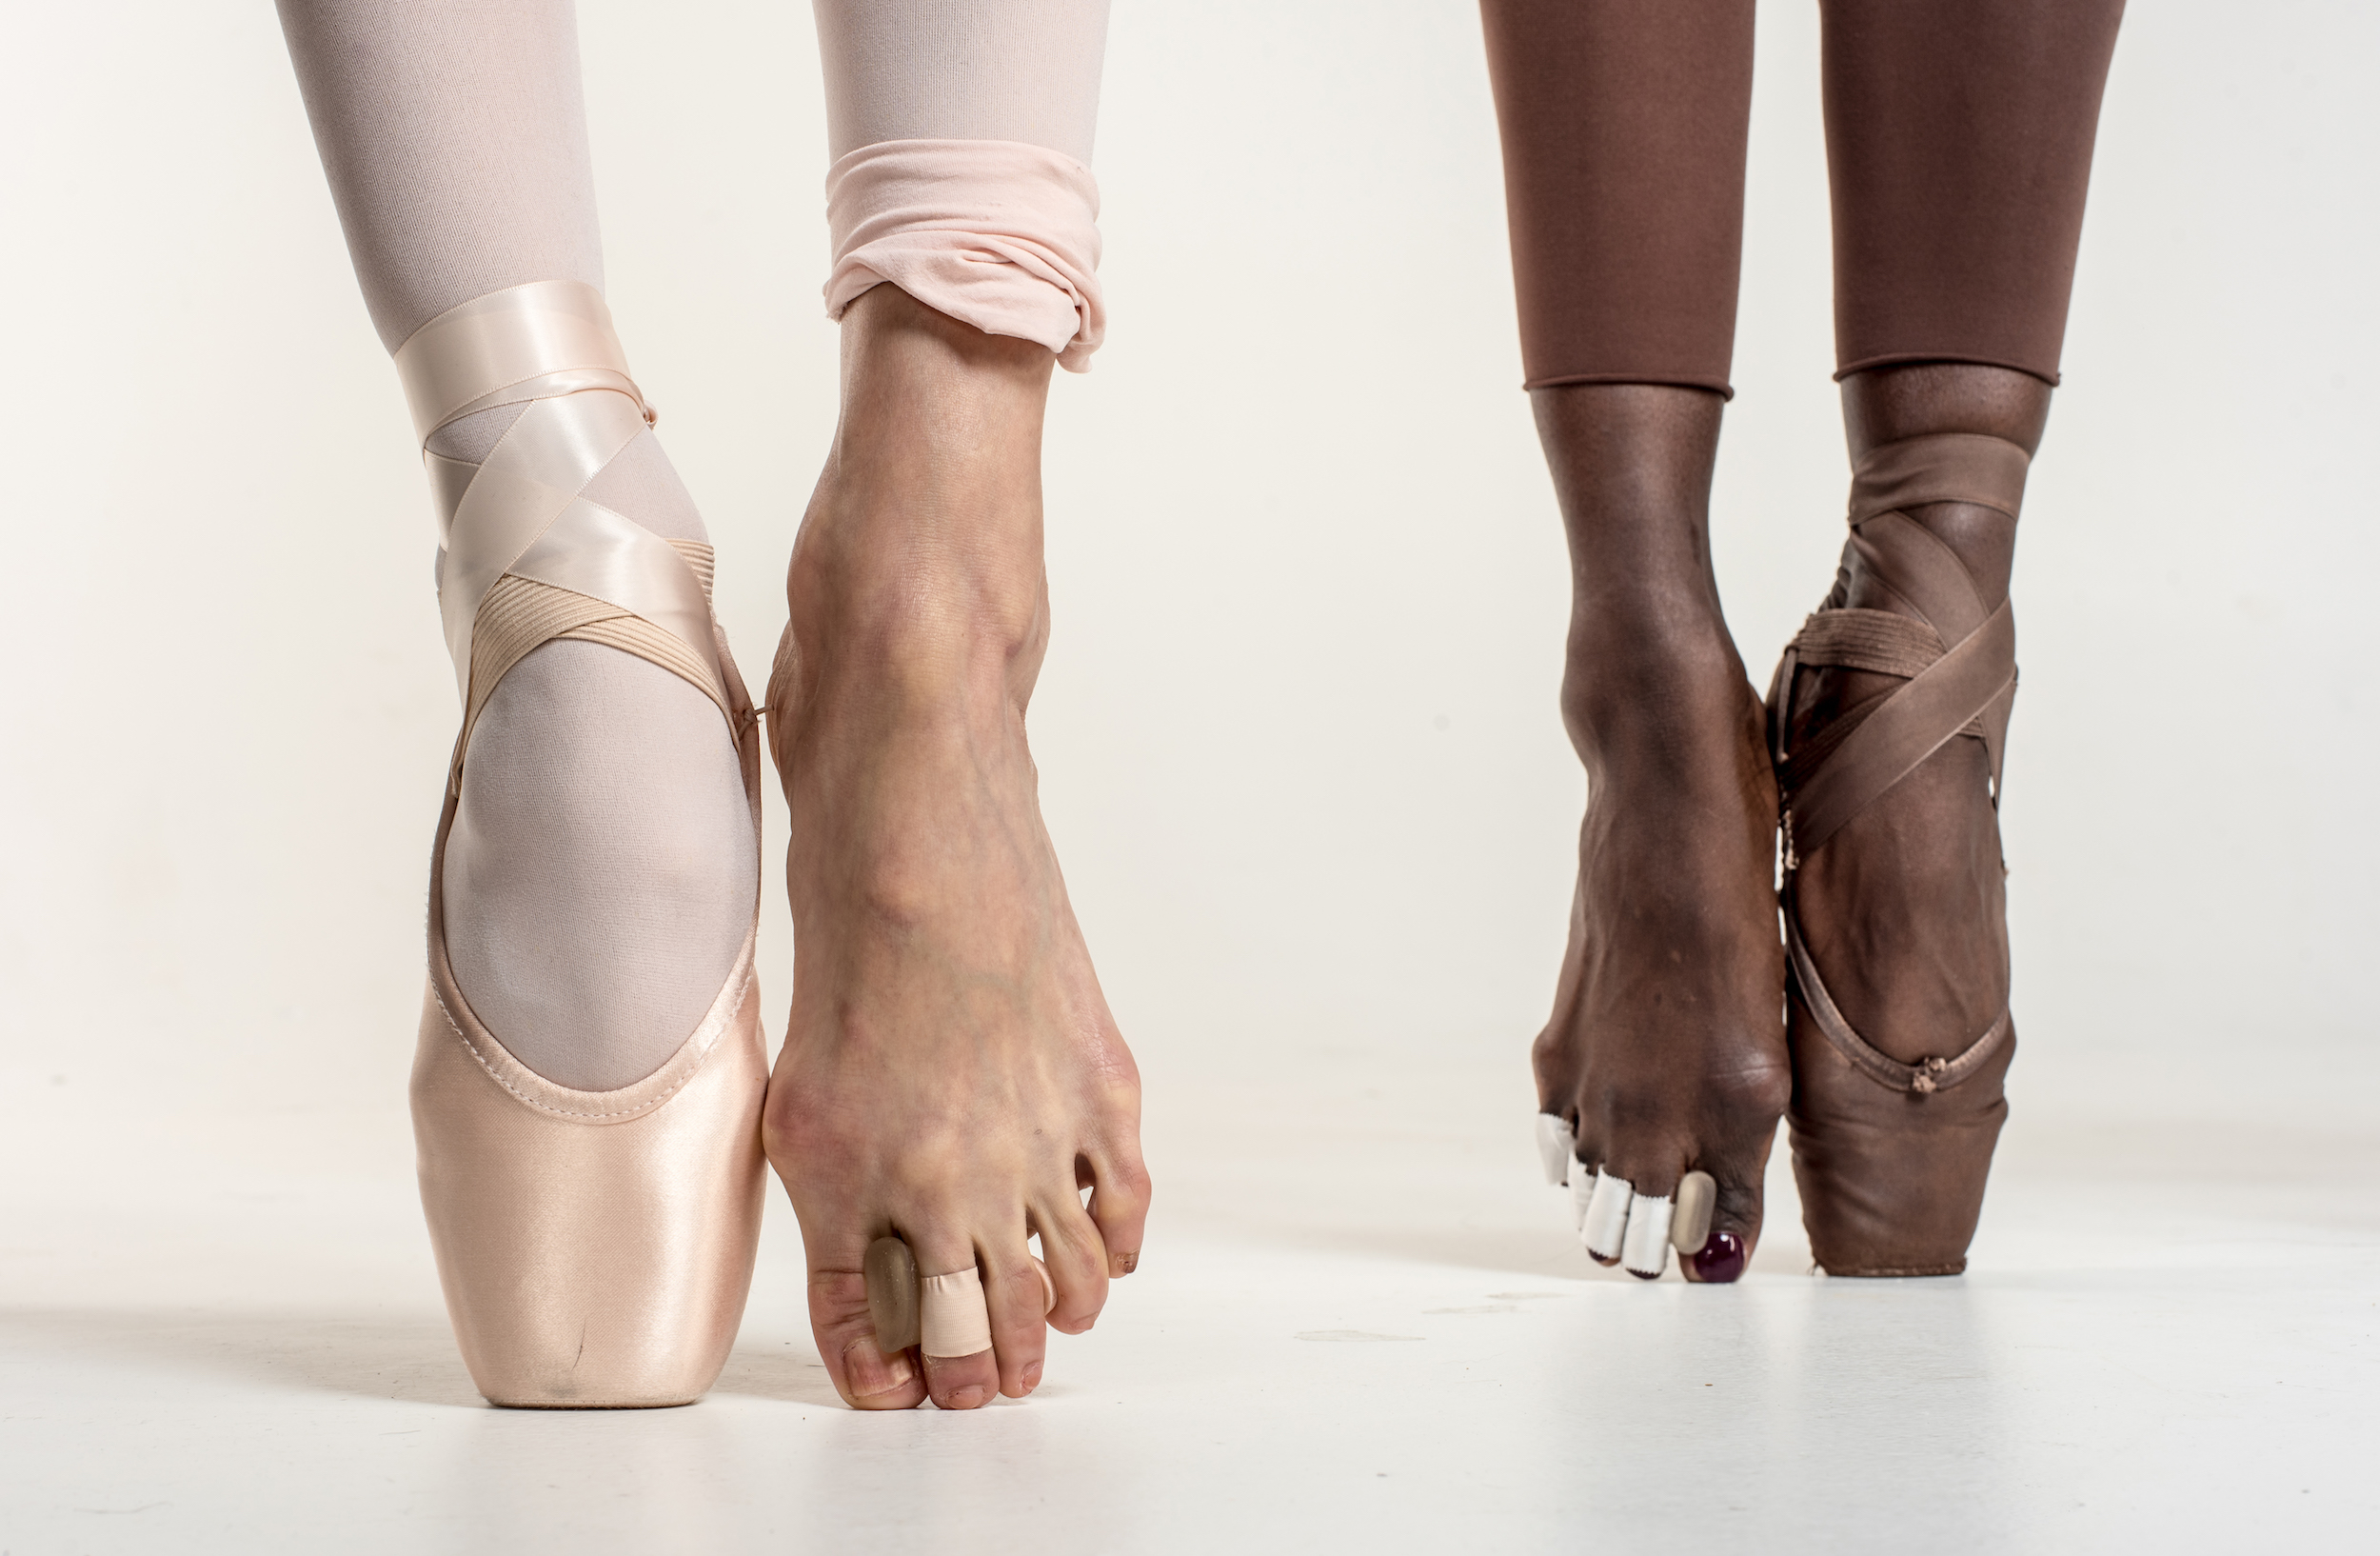 Pointe Shoe Toe Injuries